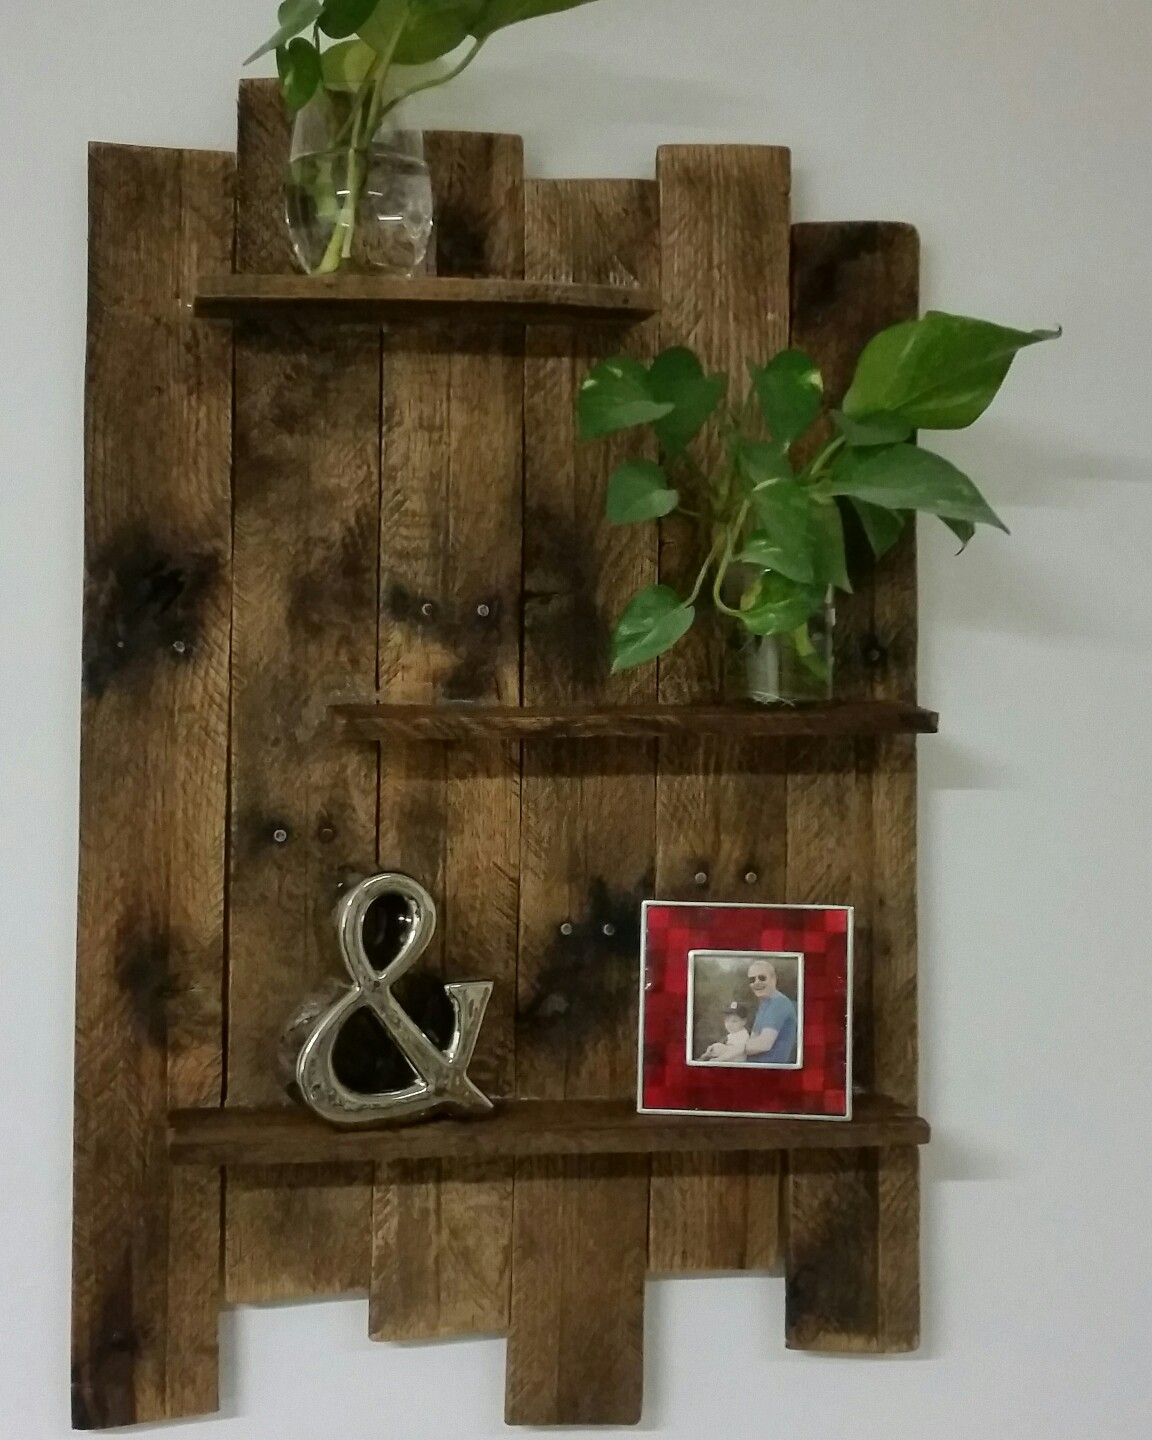 Diy wood pallet shelf diycrafts in pinterest pallet barn